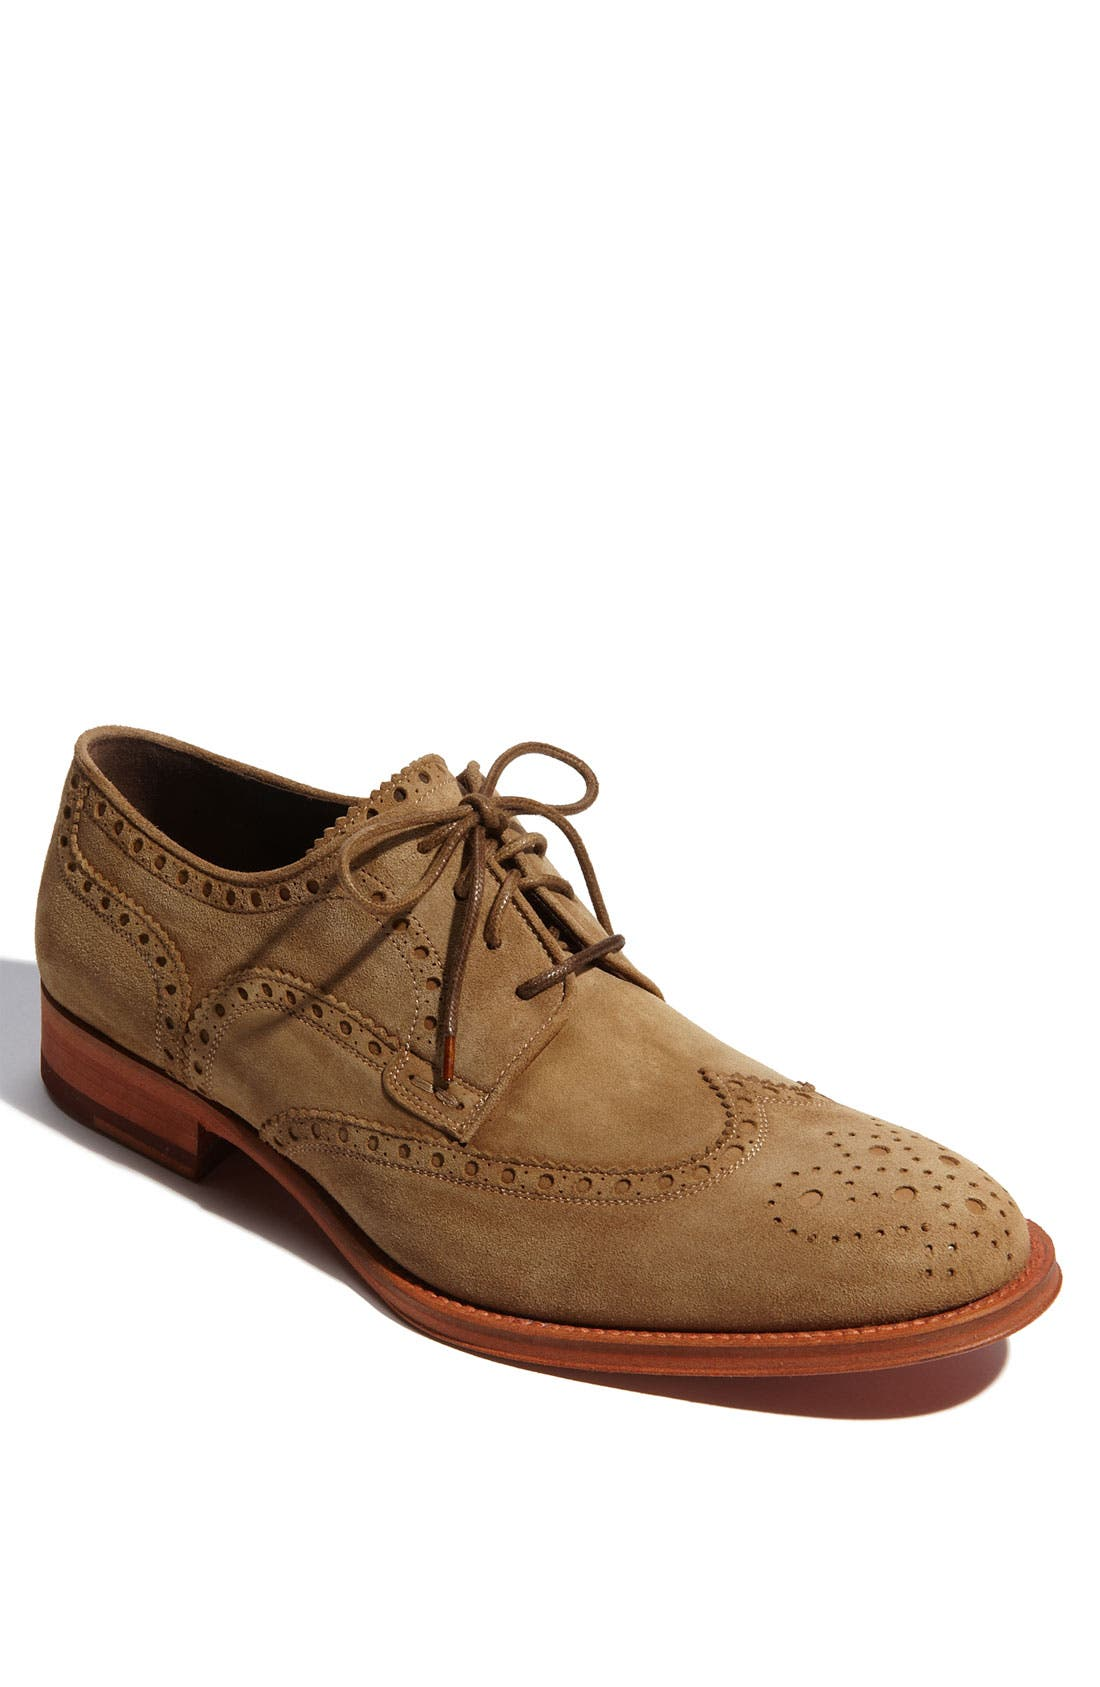 Main Image - Magnanni 'Antonio' Oxford